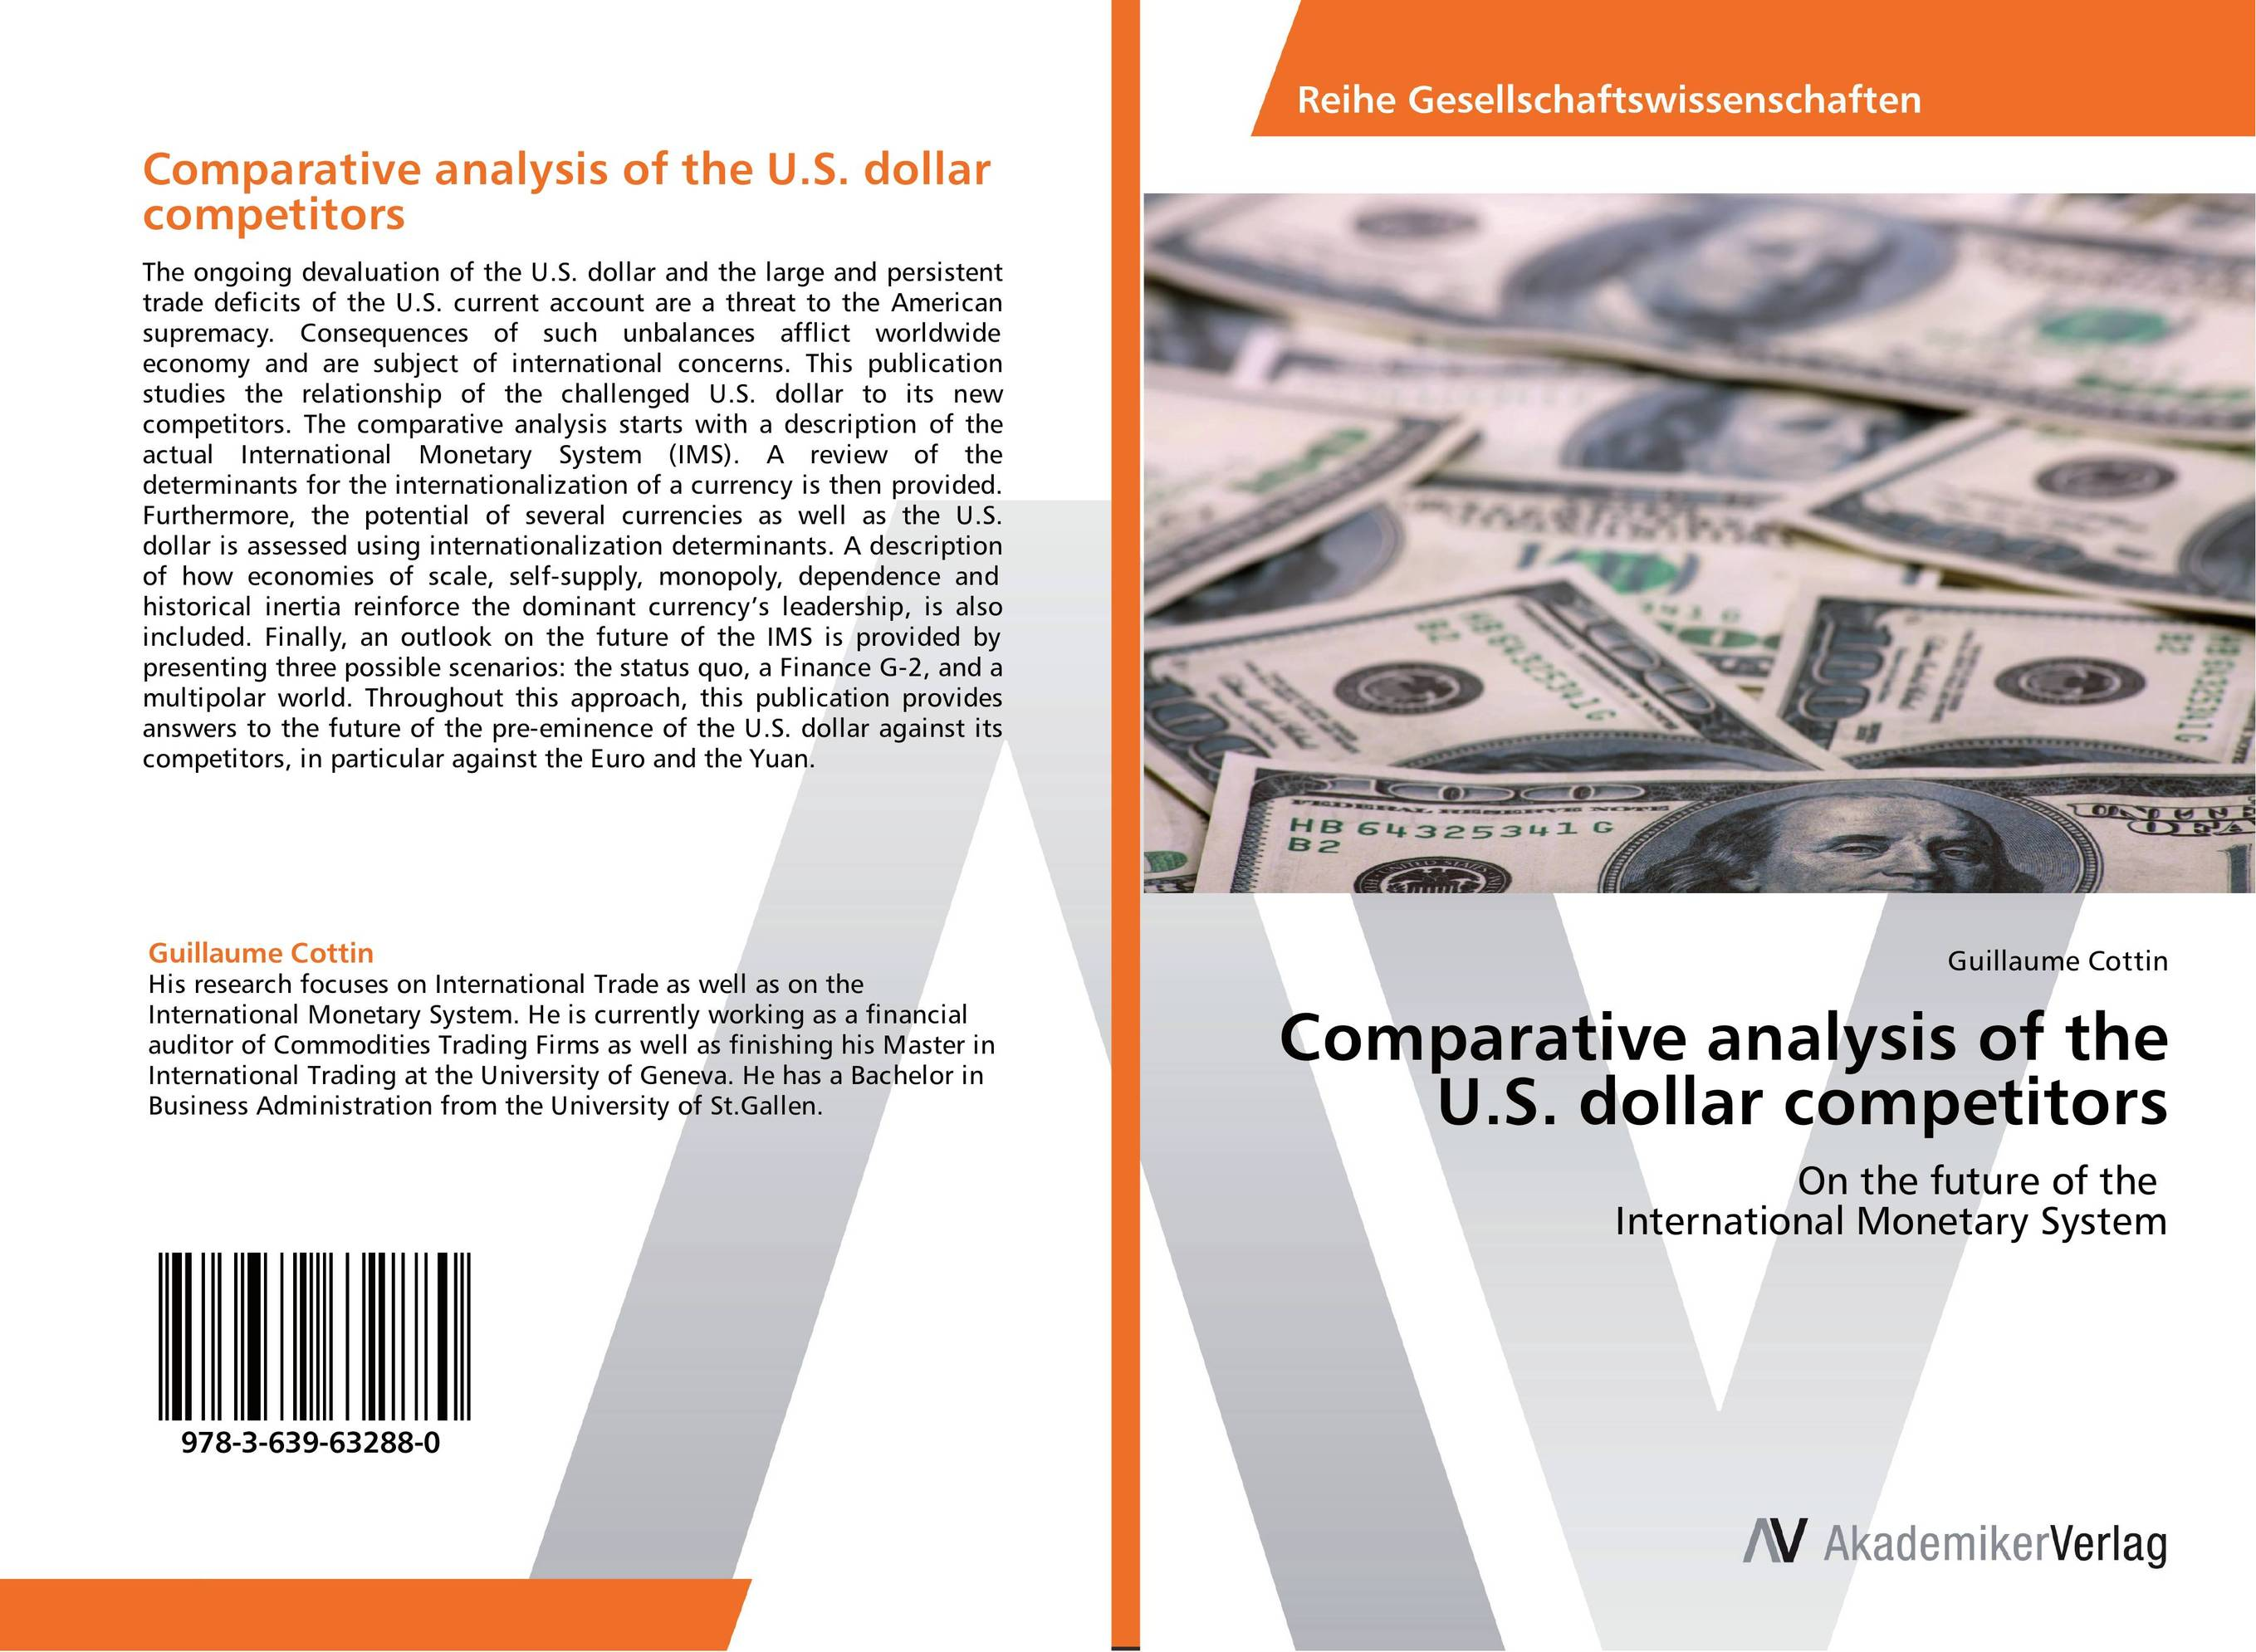 Comparative analysis of the U.S. dollar competitors